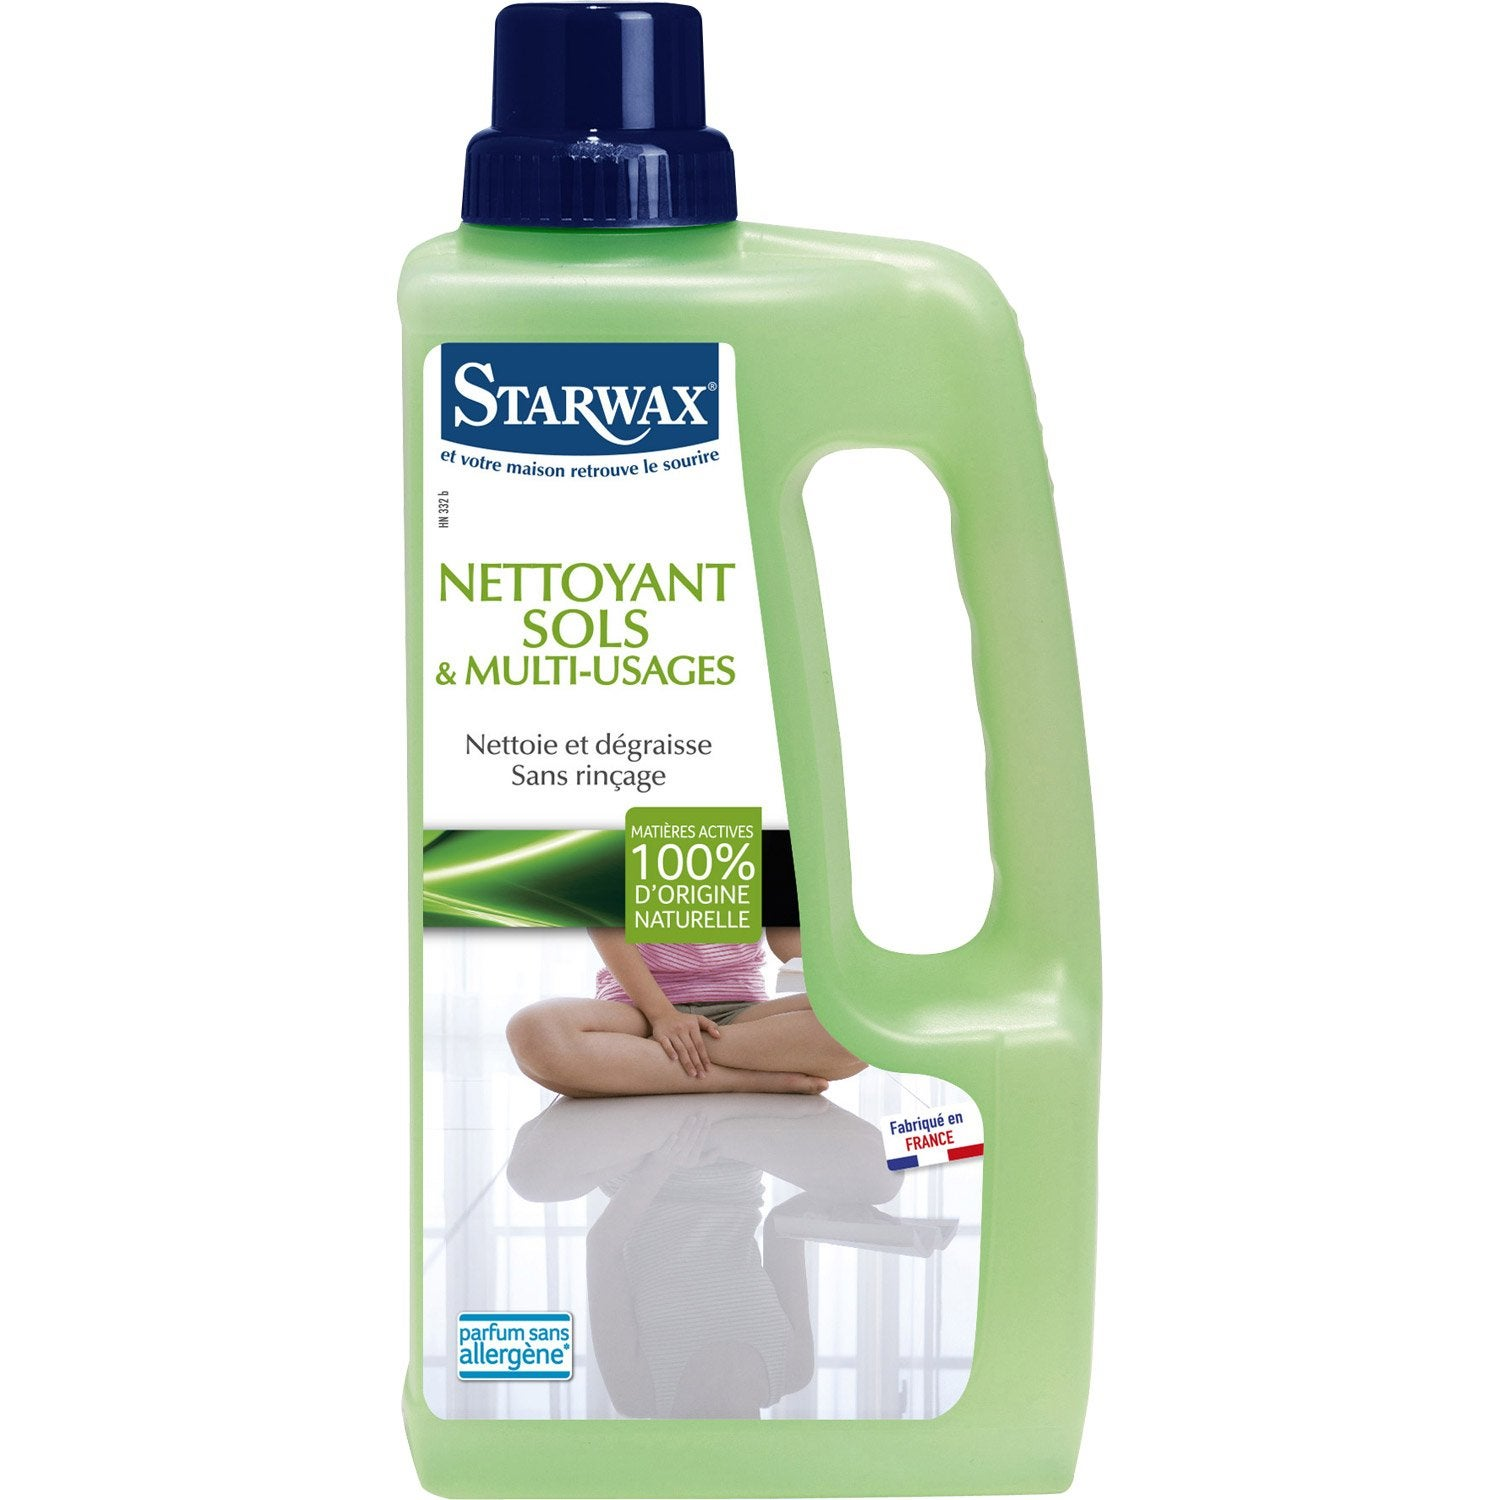 nettoyant sols multi usages starwax 1 l leroy merlin. Black Bedroom Furniture Sets. Home Design Ideas